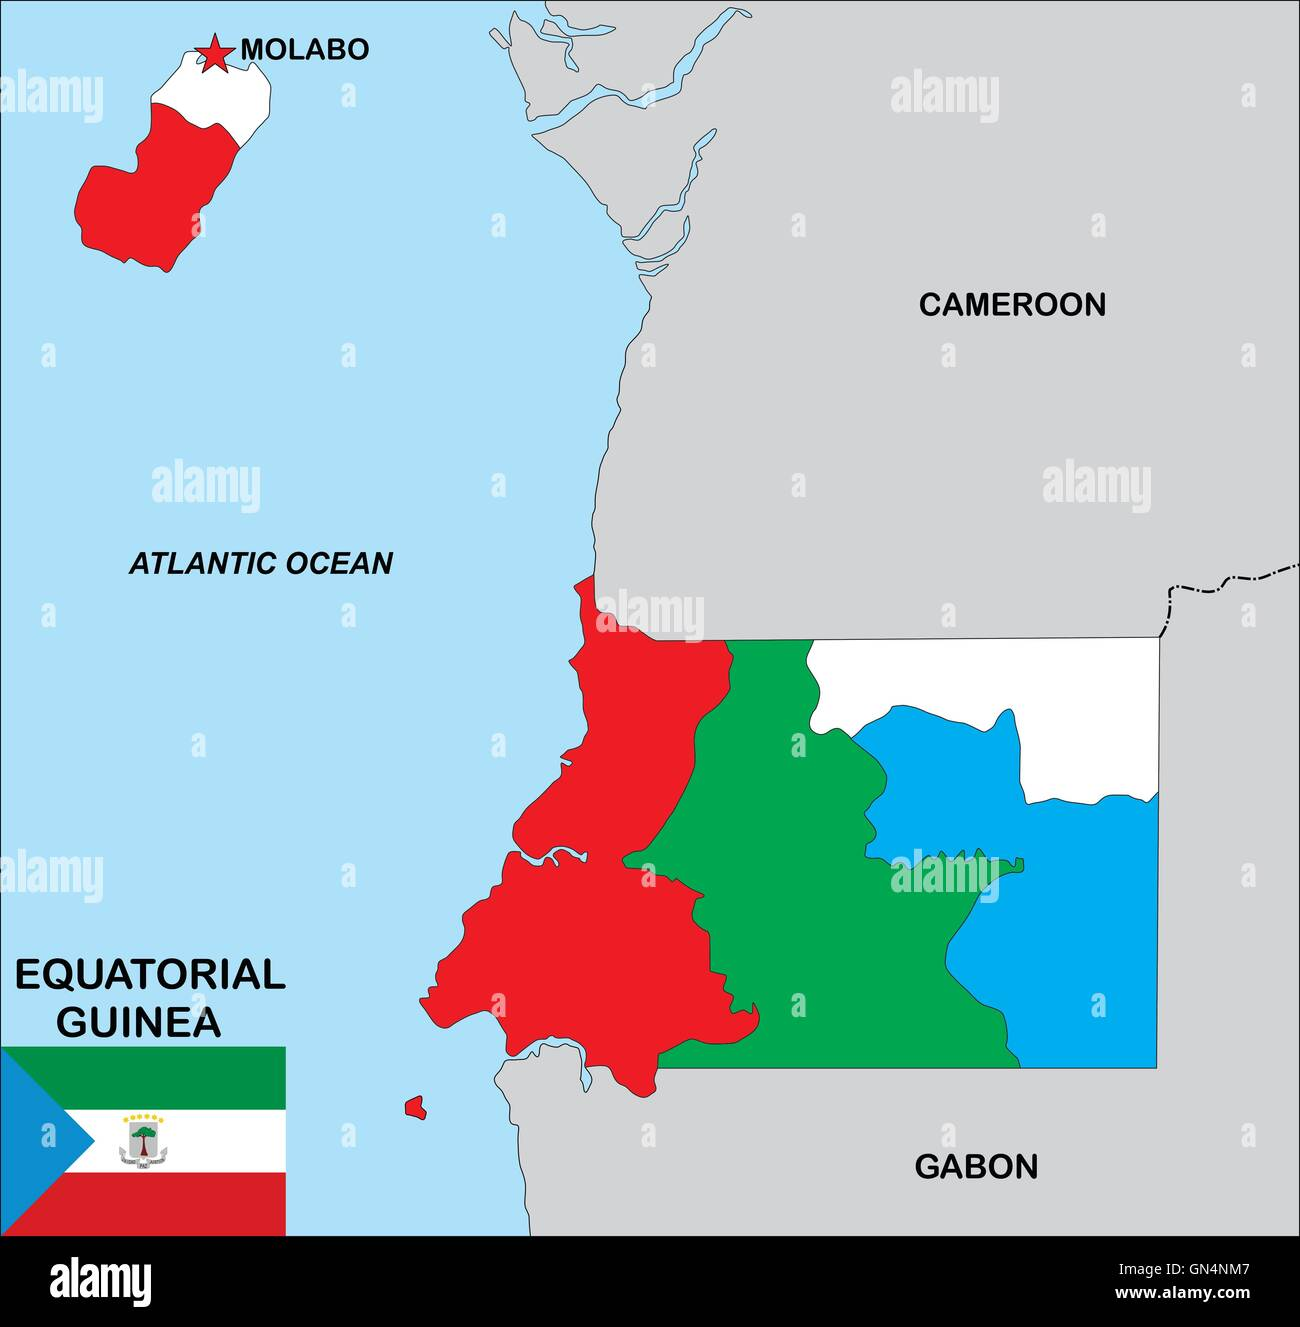 Equatorial Guinea Map Stock Photos & Equatorial Guinea Map Stock ...